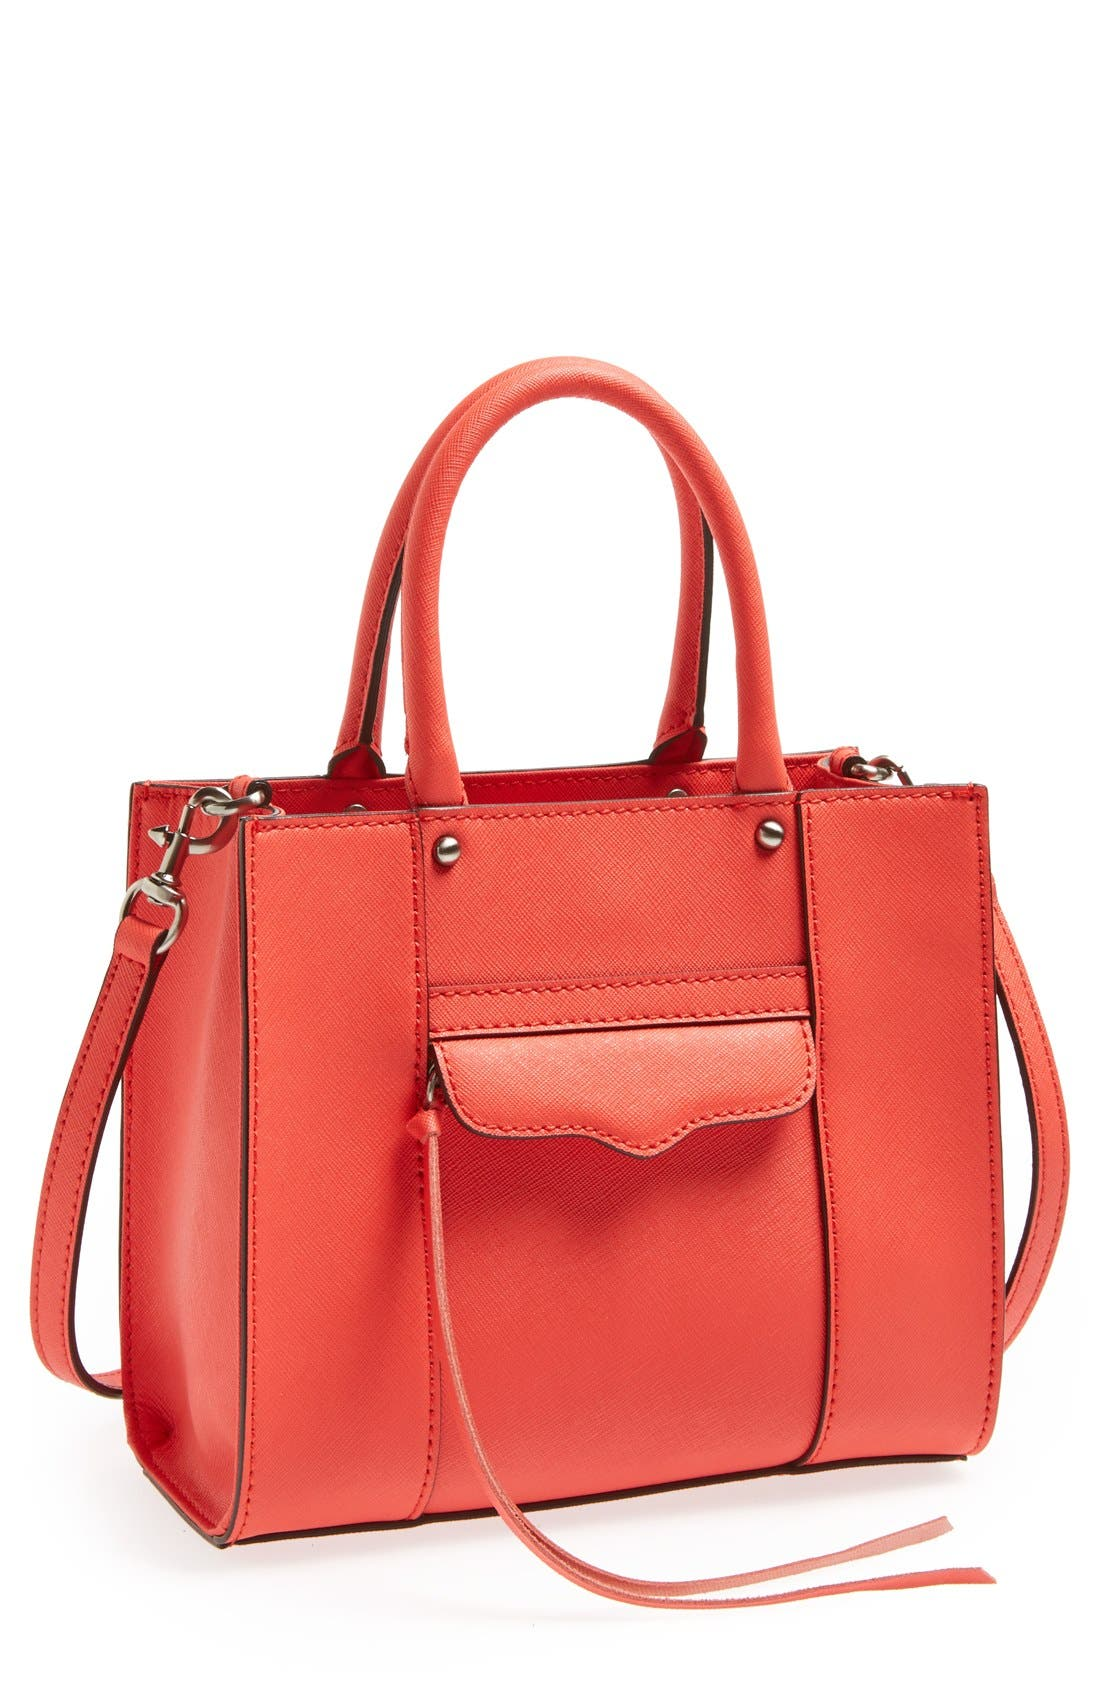 Main Image - Rebecca Minkoff 'MAB Mini' Leather Tote